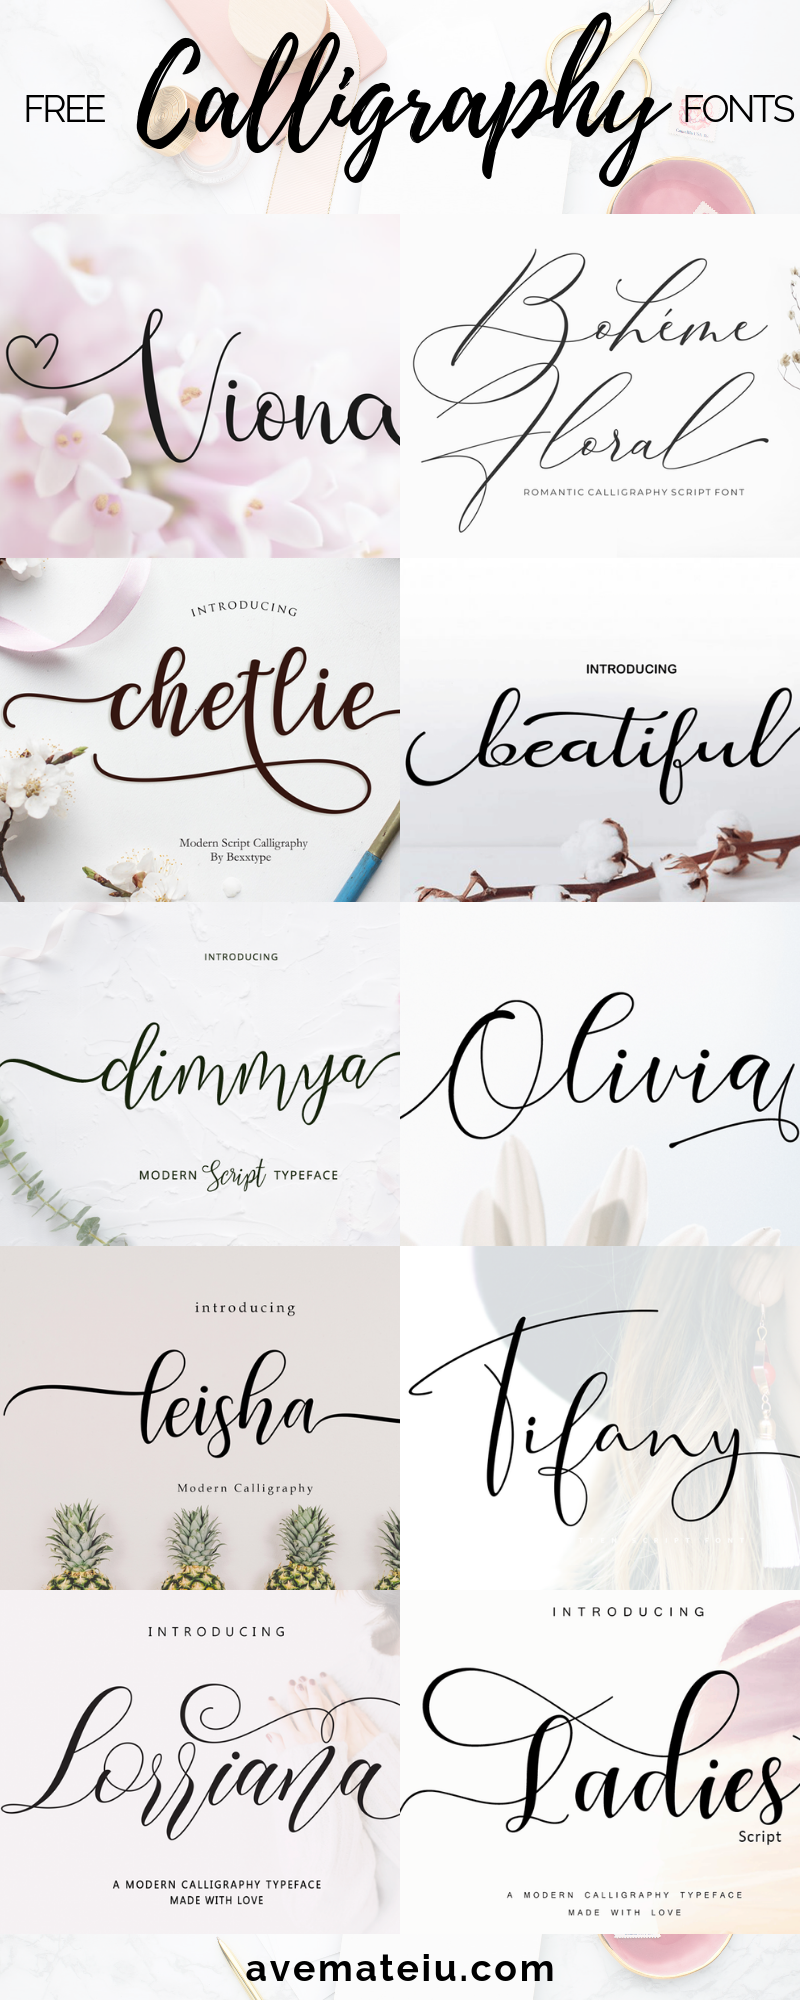 Calligraphy Font Modern Free 10 New Free Beautiful Calligraphy Fonts Part 3 Typography